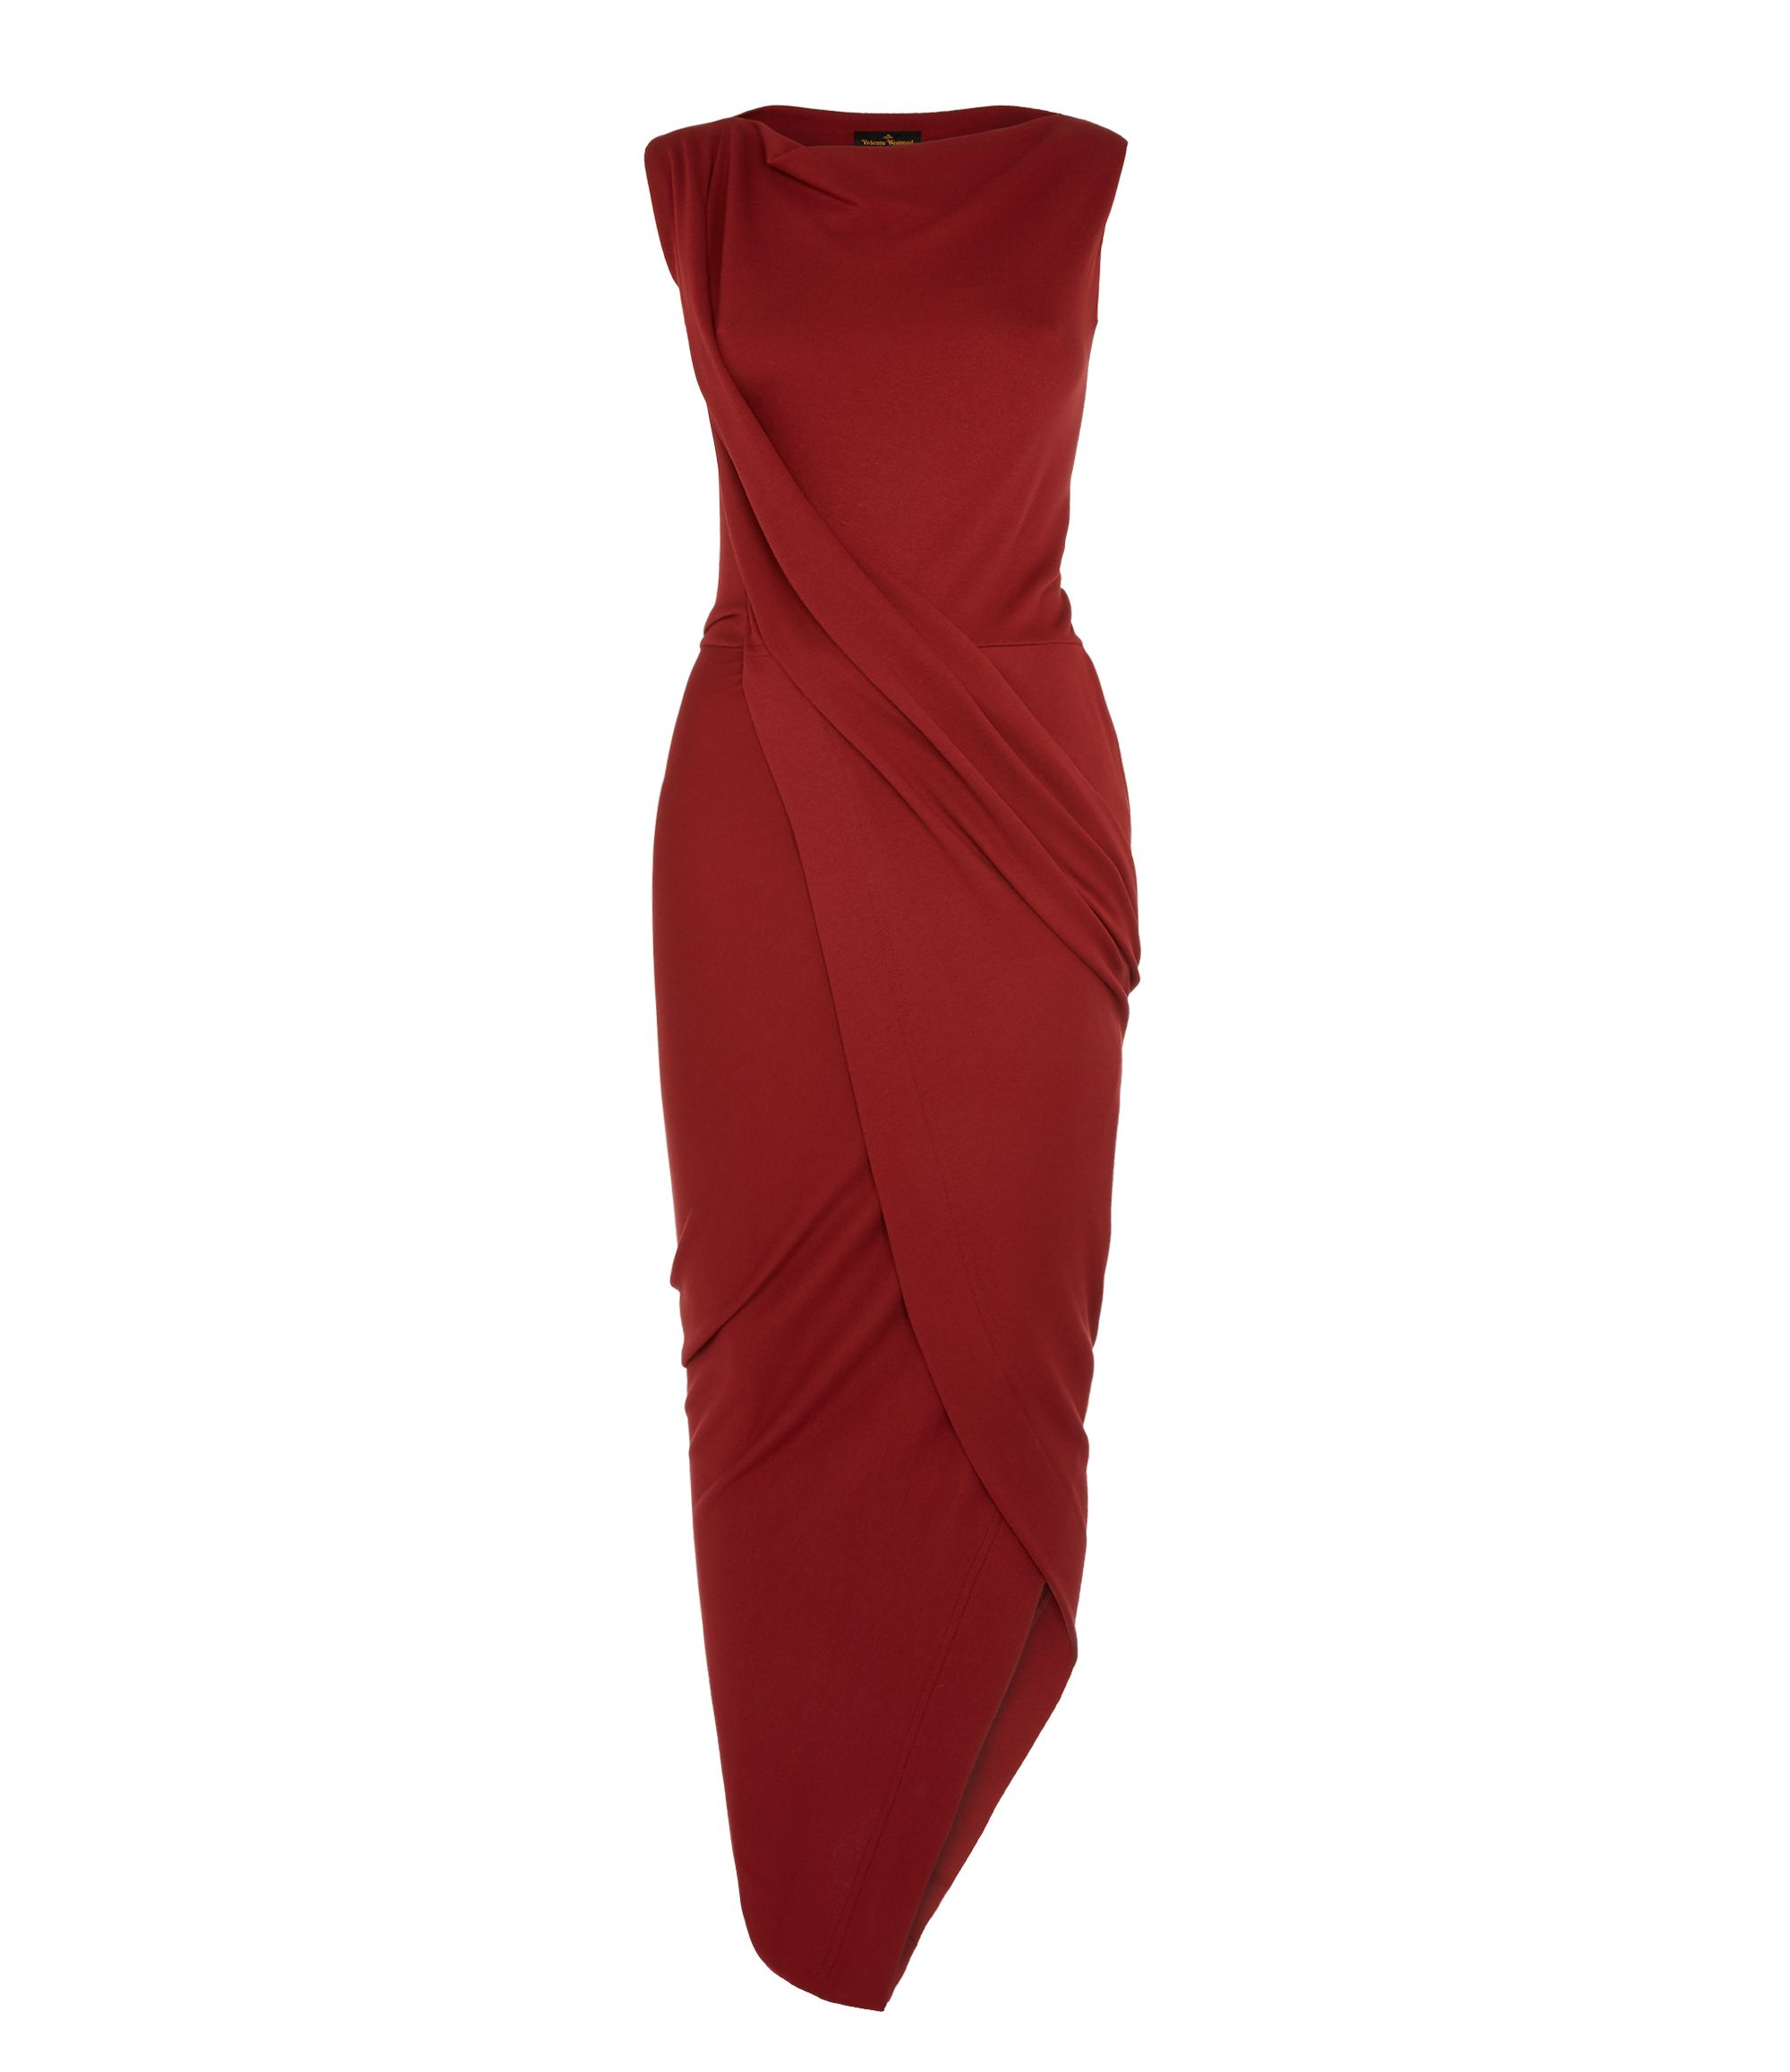 Dress for Women, Evening Cocktail Party On Sale, Red, Viscose, 2017, 10 Vivienne Westwood